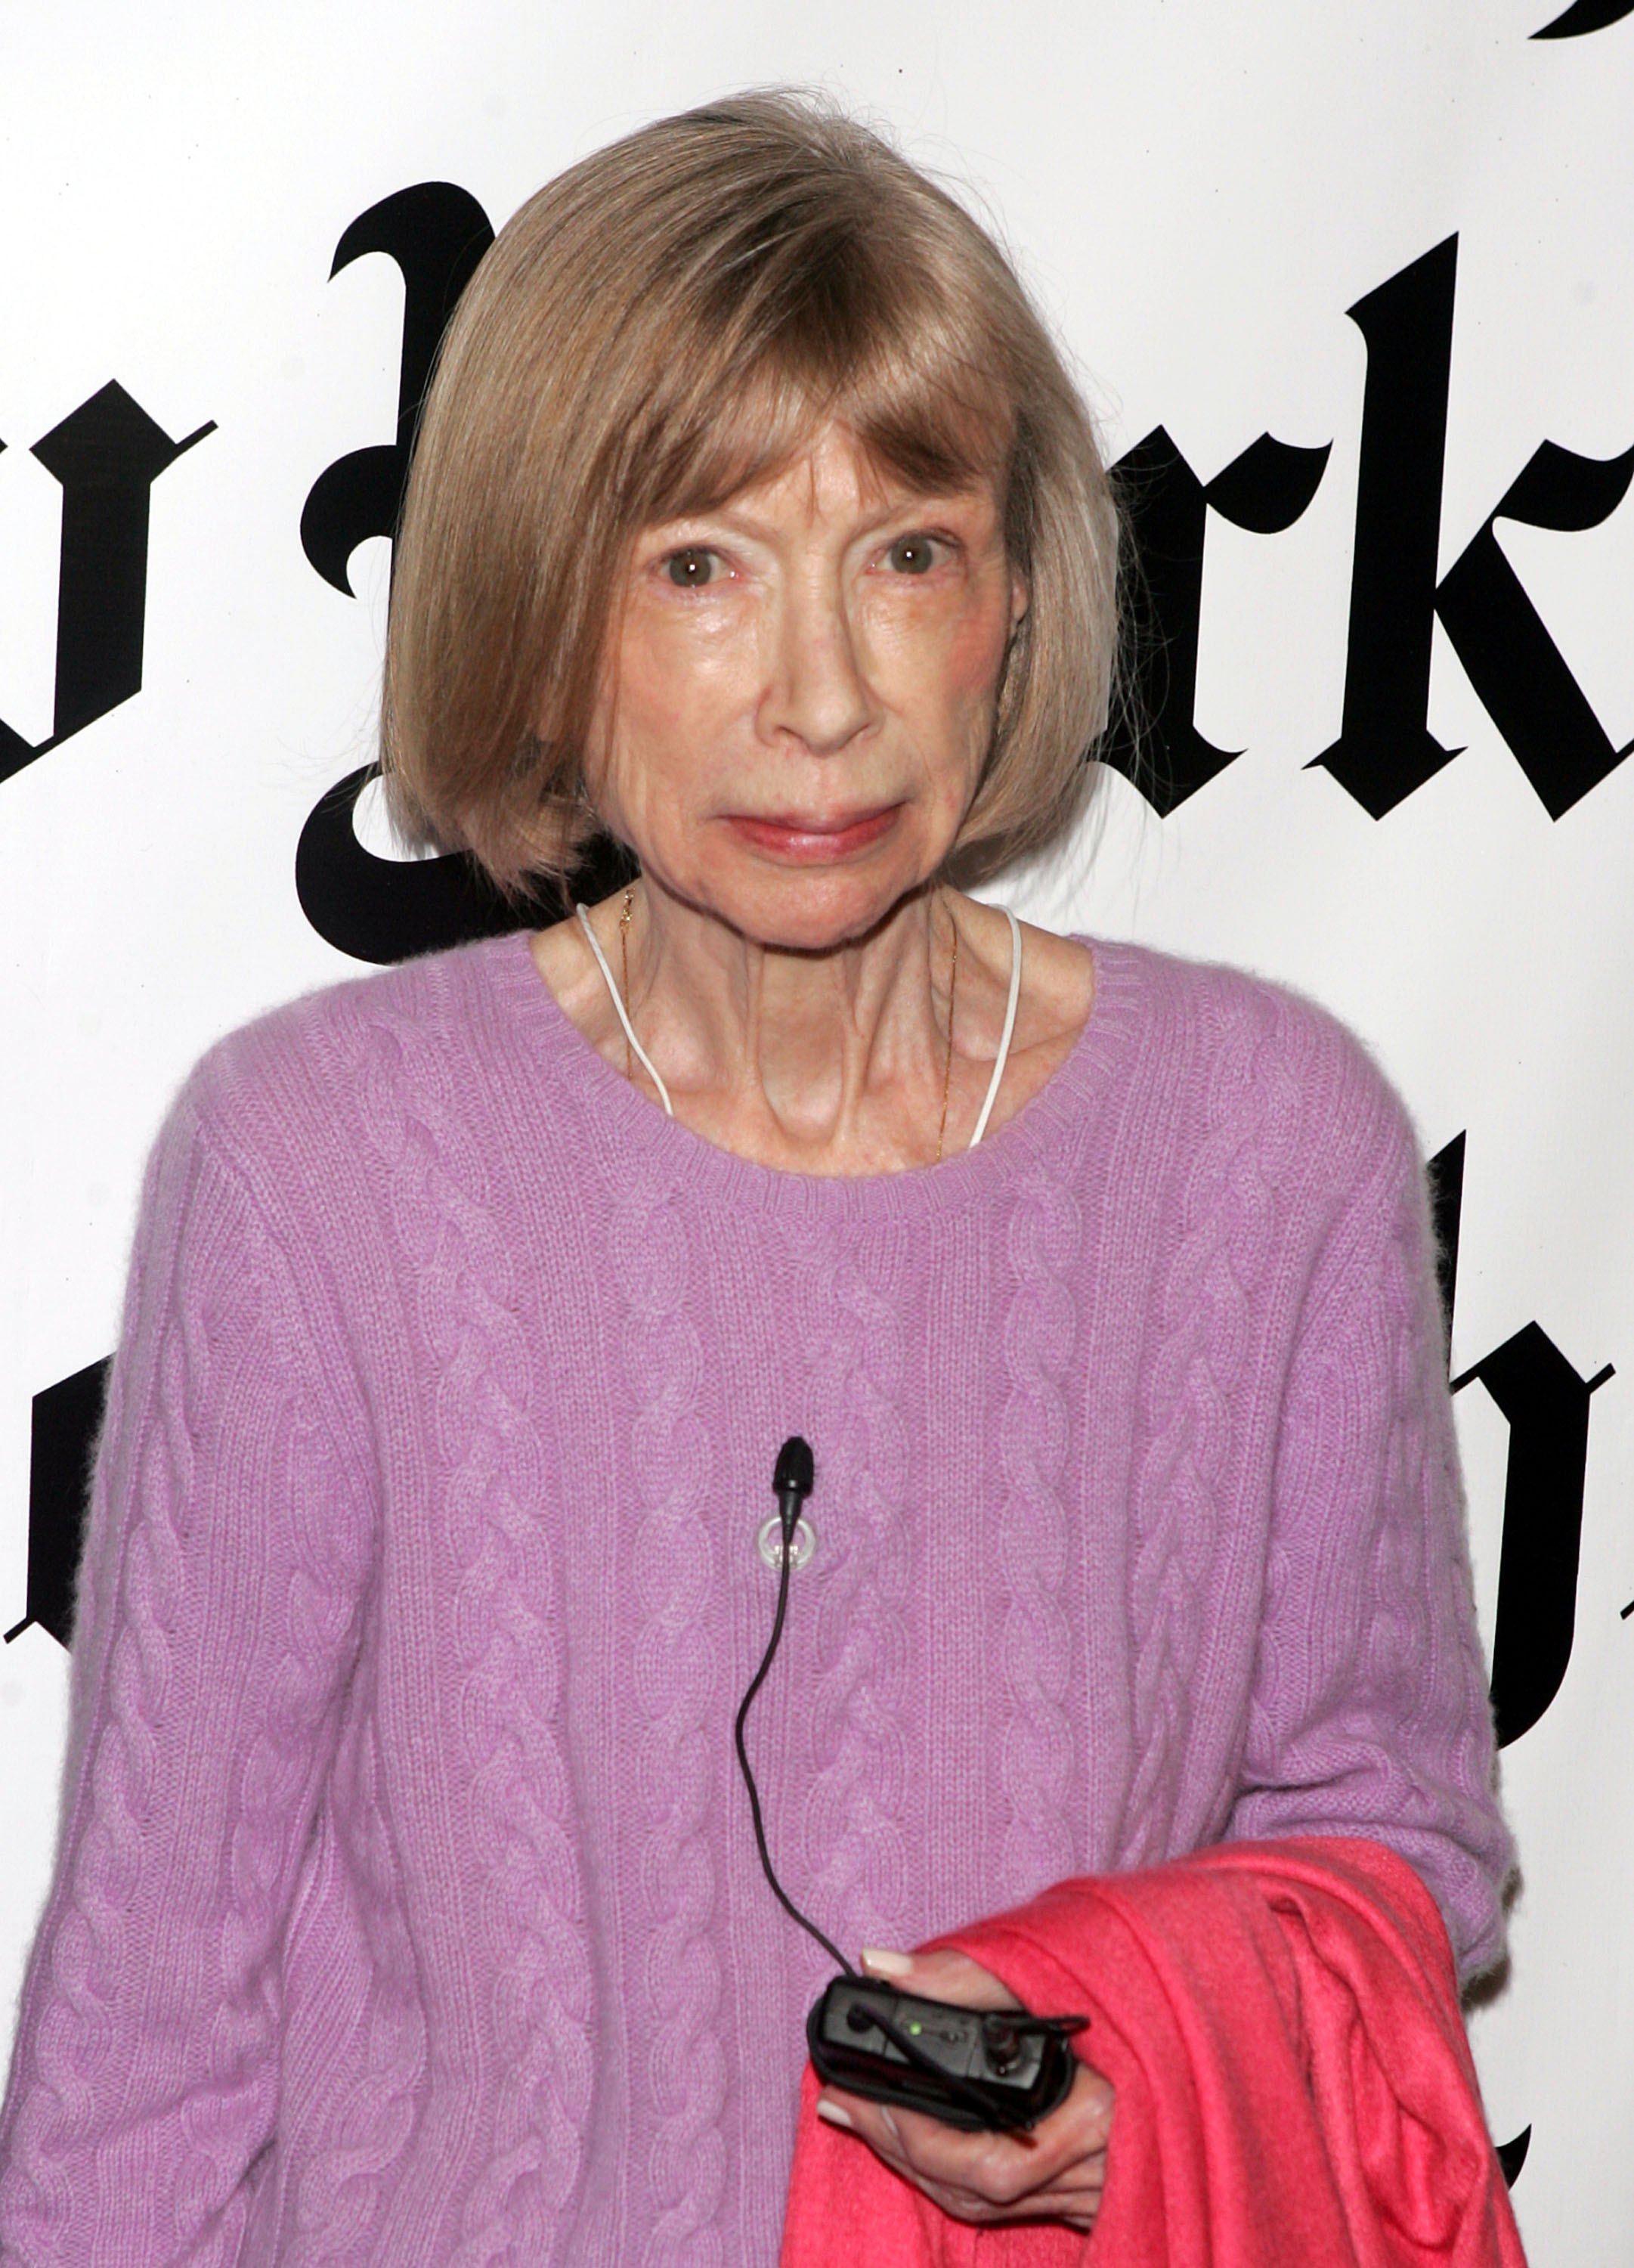 joan didion essays conversations All i know about grammar is its power joan didion, joan didion: essays &  conversations grief turns out to be a place none of us know until we reach it  joan.